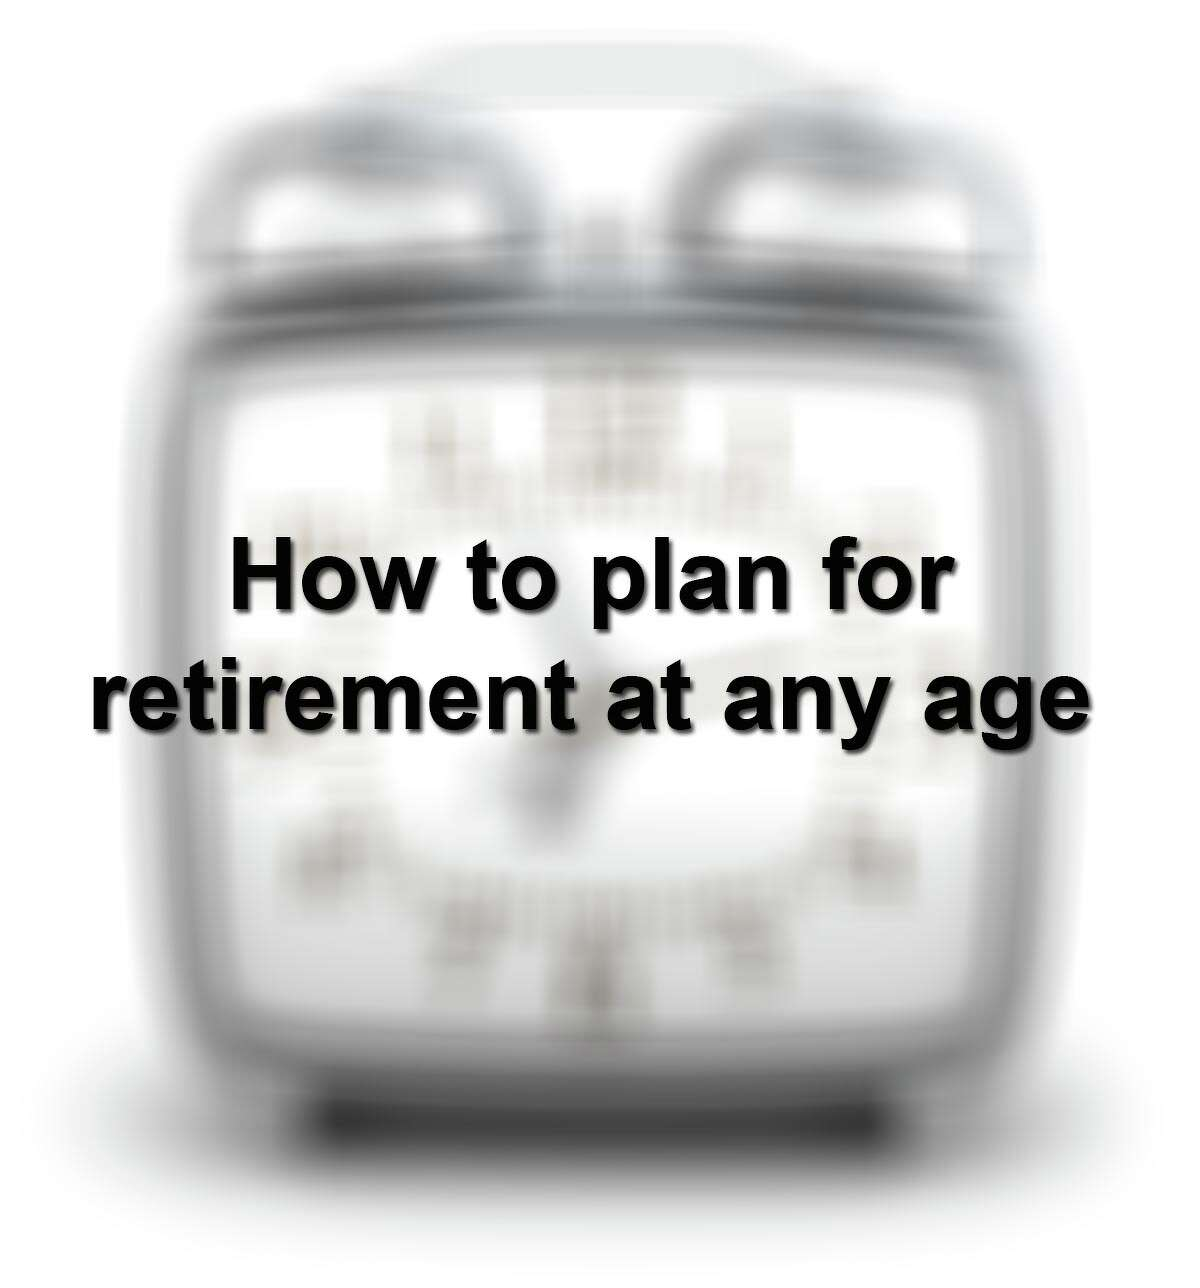 Ahh retirement, when you can finally kiss that alarm clock goodbye. But before that can happen, you need to plan. Follow these tips for how to get started at any age.